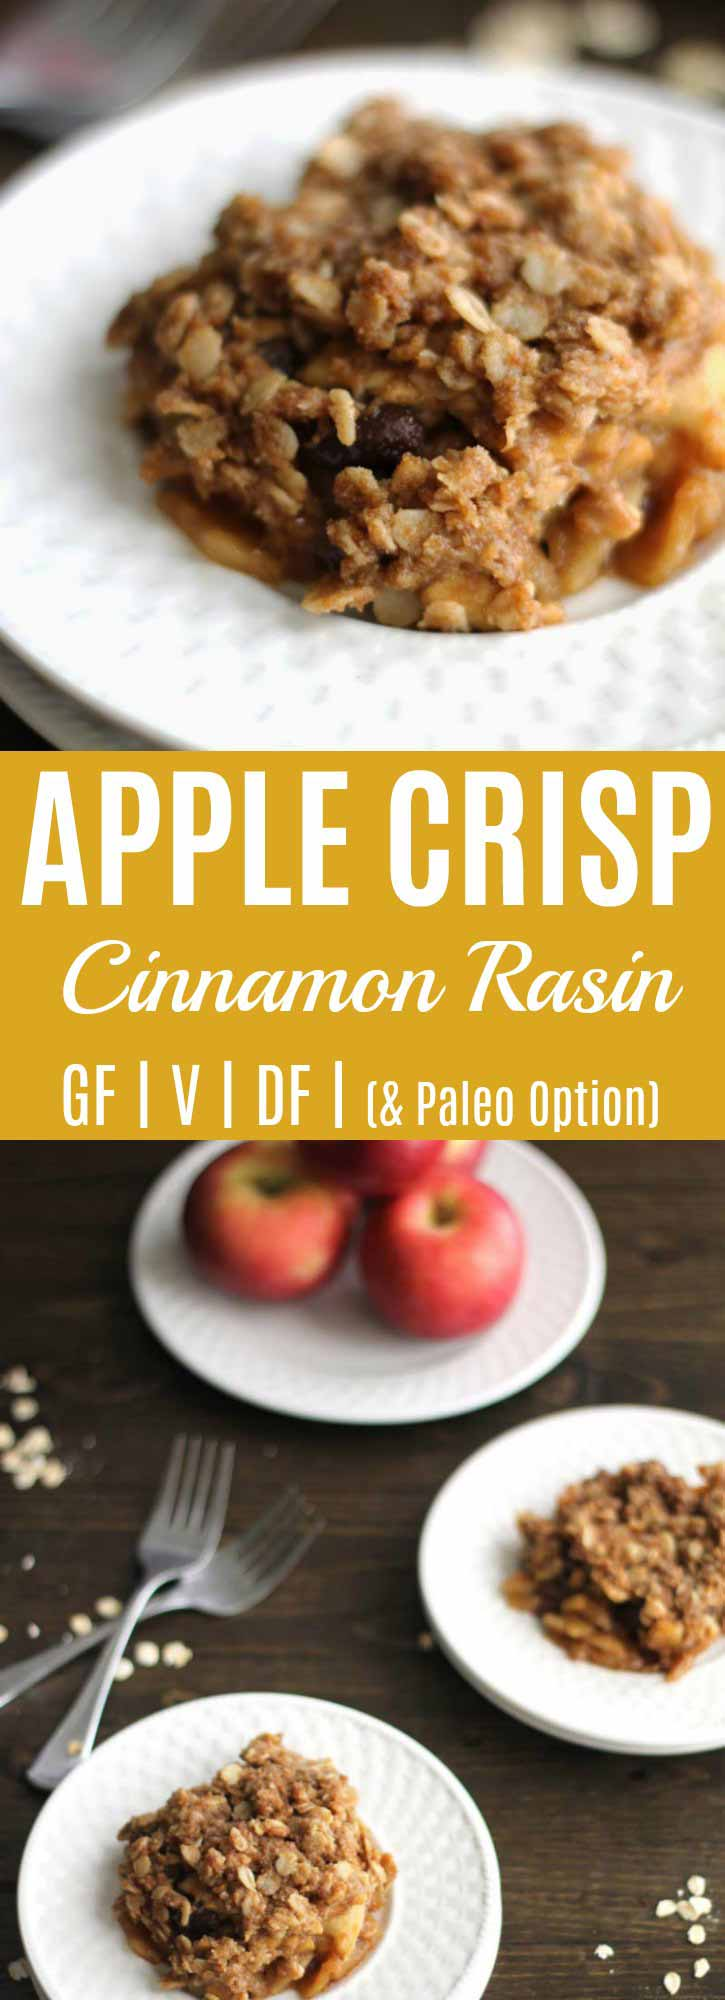 Cinnamon Raisin Apple Crisp {Coconut Oil, Gluten-free} | This apple crisp is my #1 requested recipe this fall; whenever I bring this apple crisp or send it to work with my husband people BEG for the recipe! Made with wholesome ingredients, no refined sweeteners, is gluten-free, & contains nourishing coconut oil. | thenourishedfamily.com